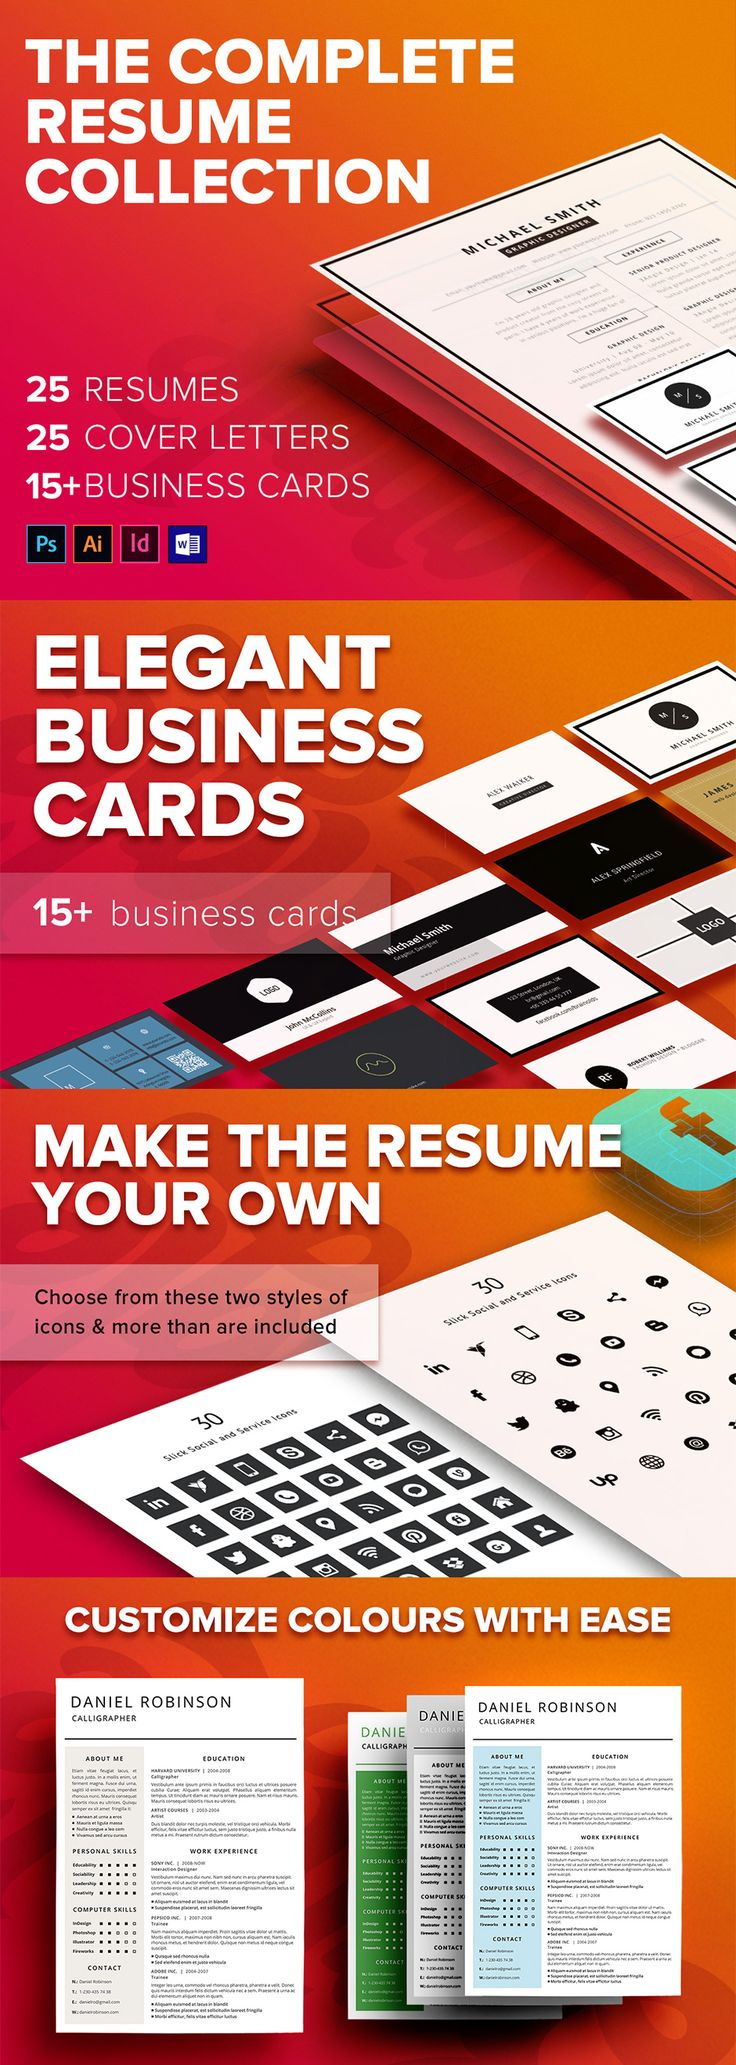 19 Best Business Design Resources Images On Pinterest Powerpoint Bridge From Ceo Pack The All Purpose Modern Bundle